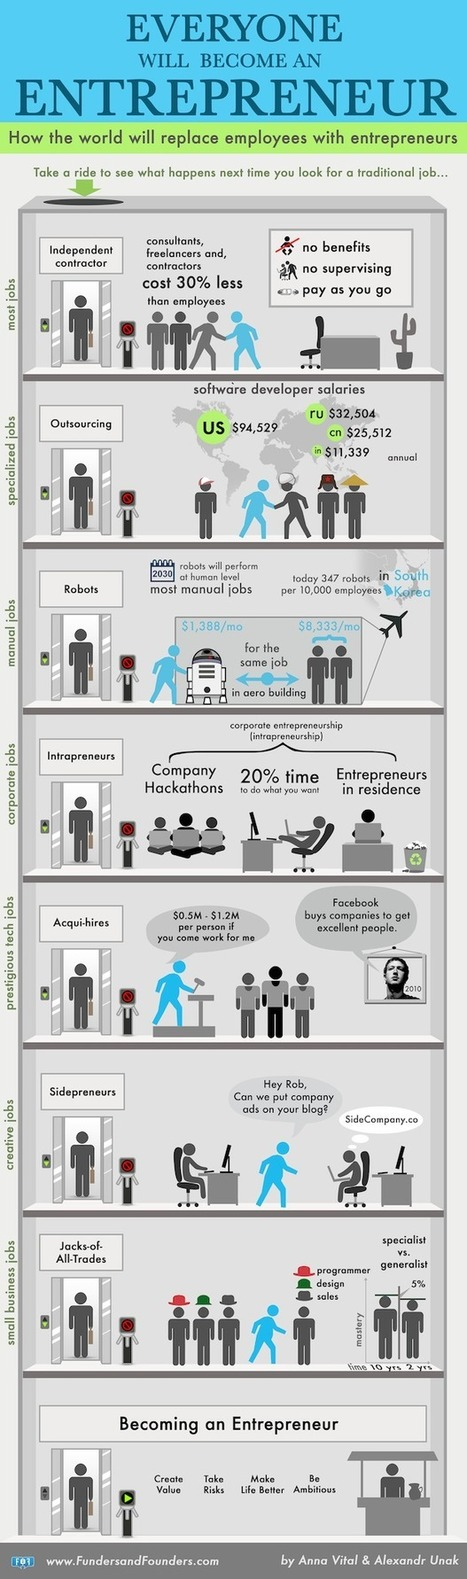 Everyone Will Have to Become an Entrepreneur | Worker Classification - Employees vs Independent Contractors | Scoop.it